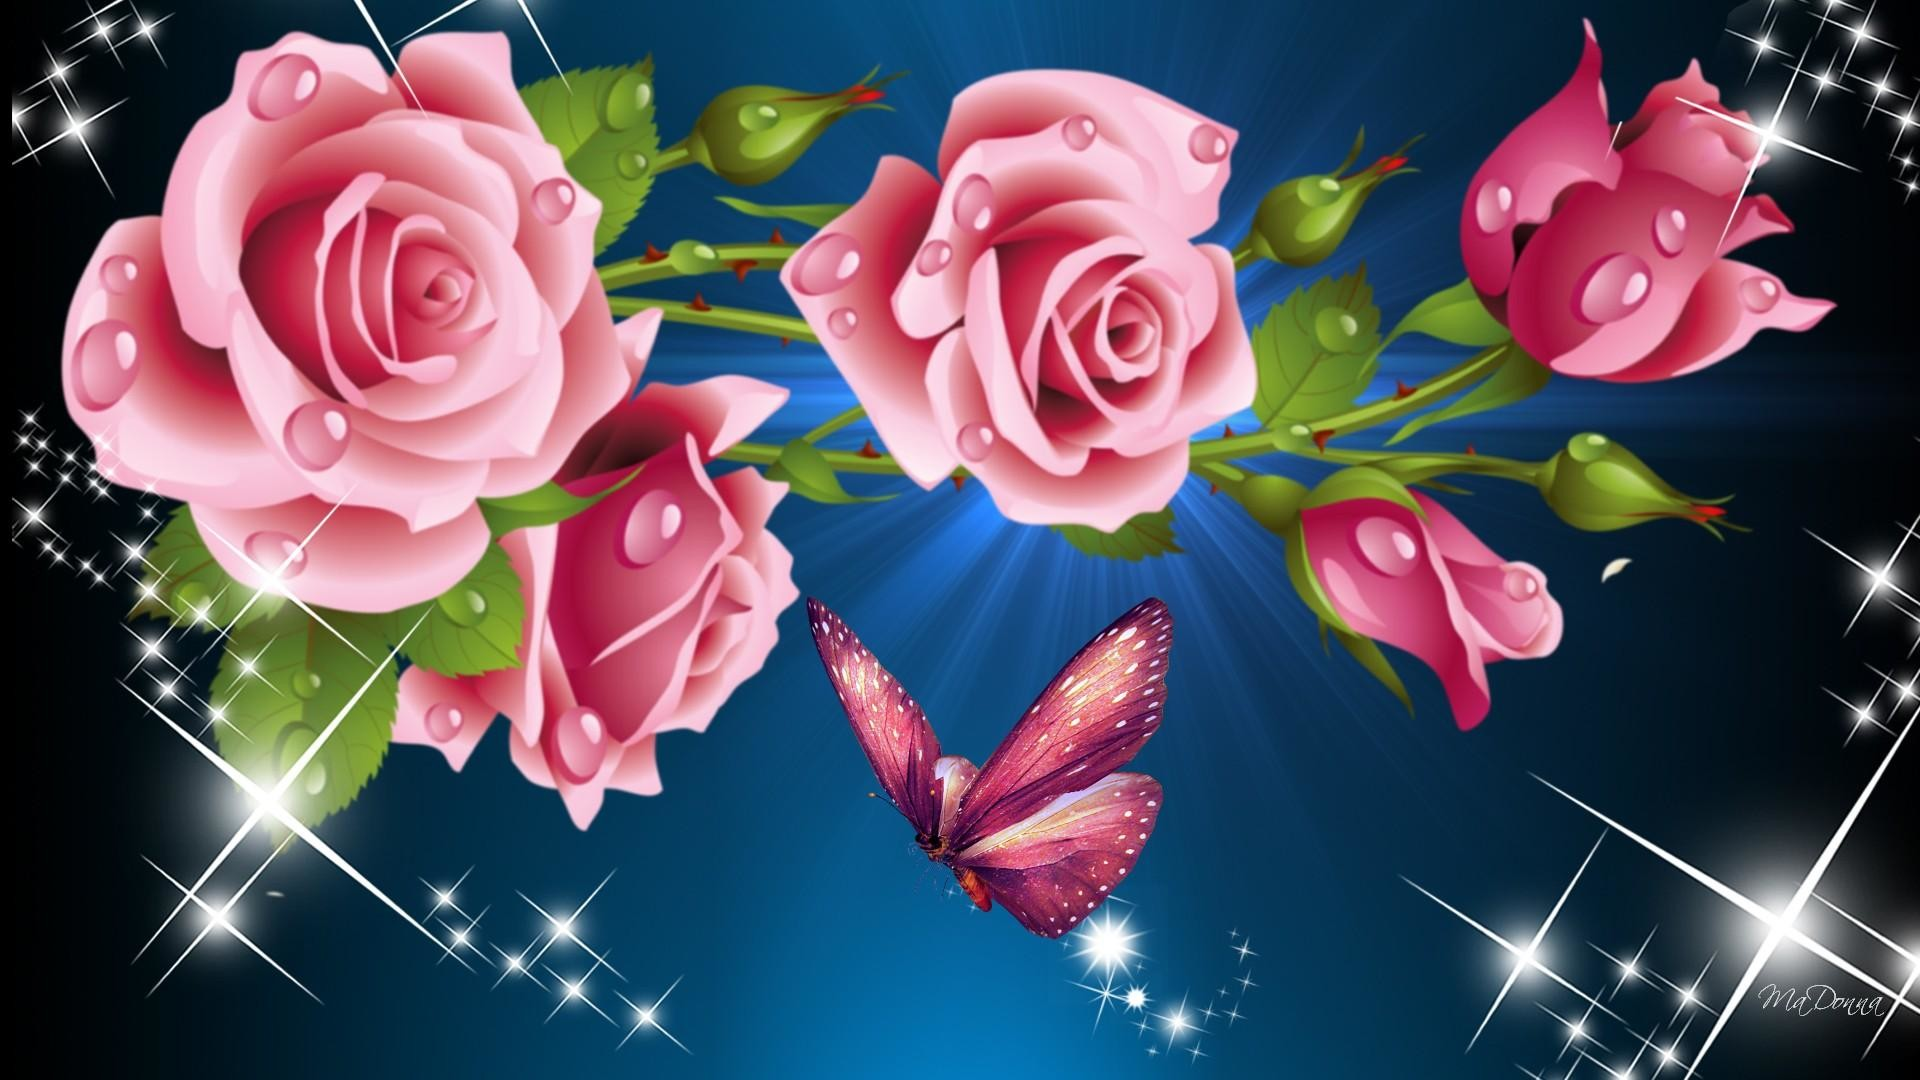 1920x1080 HD Pink Roses So Bright Wallpaper